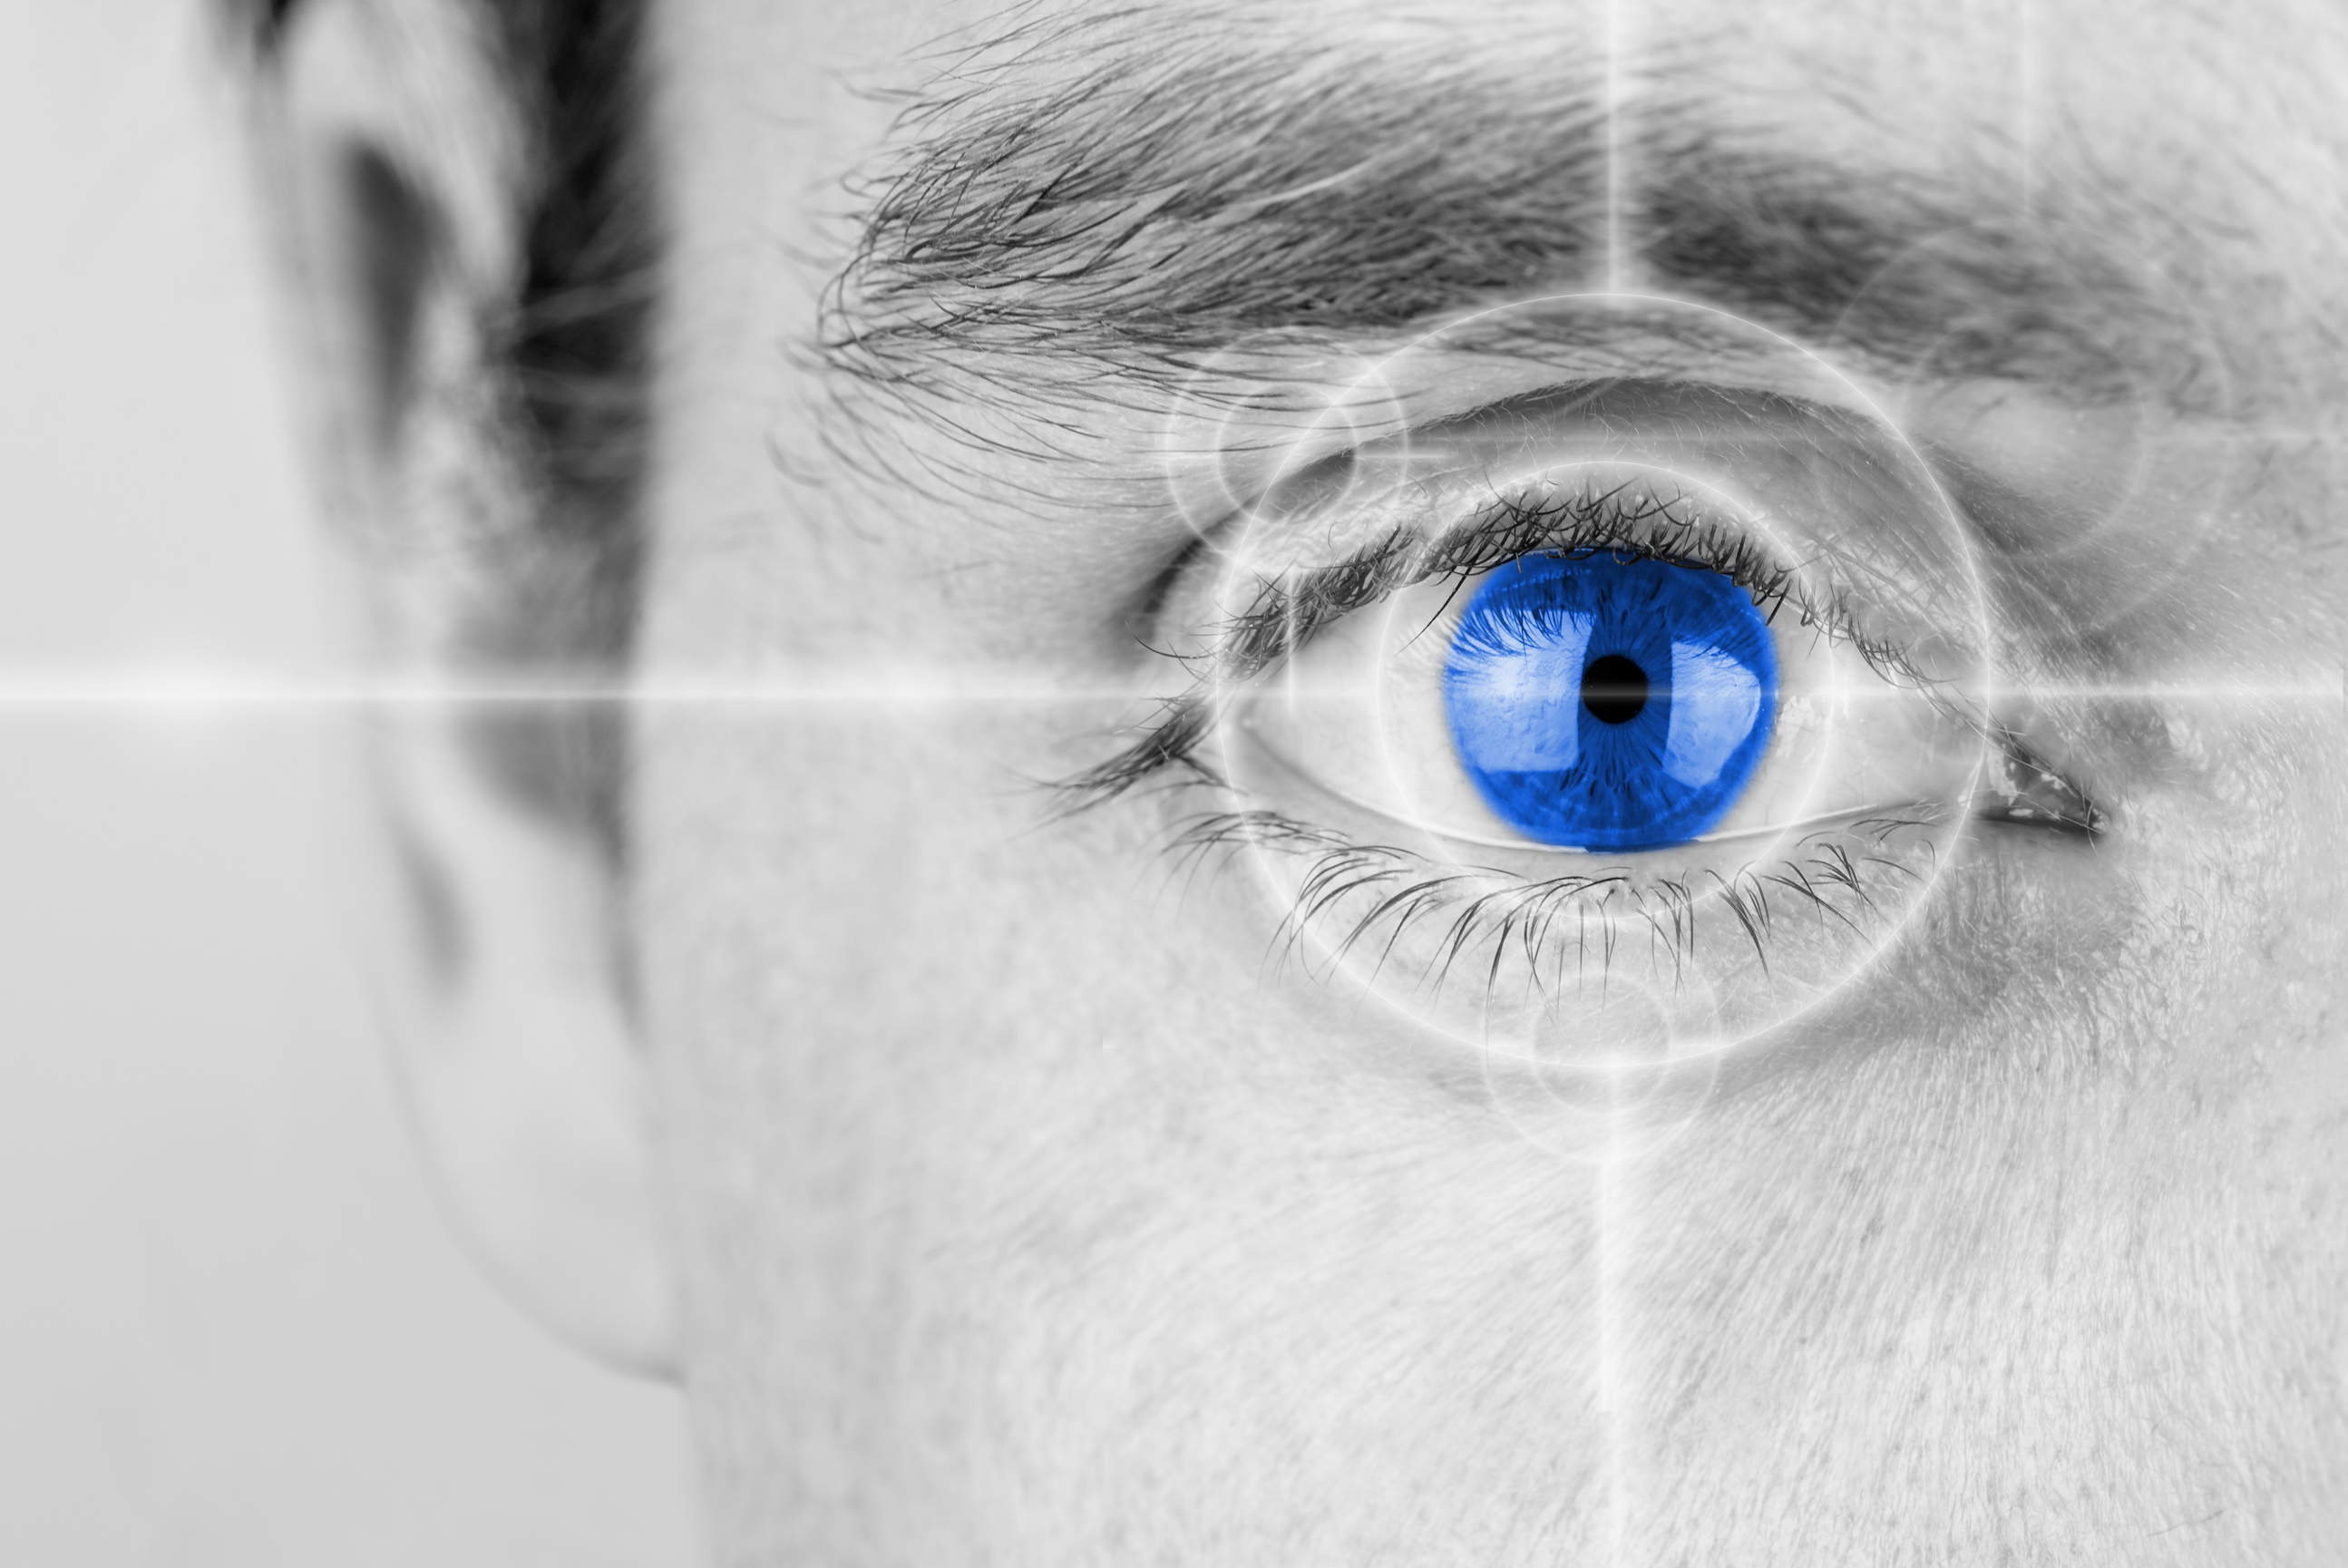 The portion of the brain that processes vision continues to develop into a person's late 30s and 40s, a new study found.